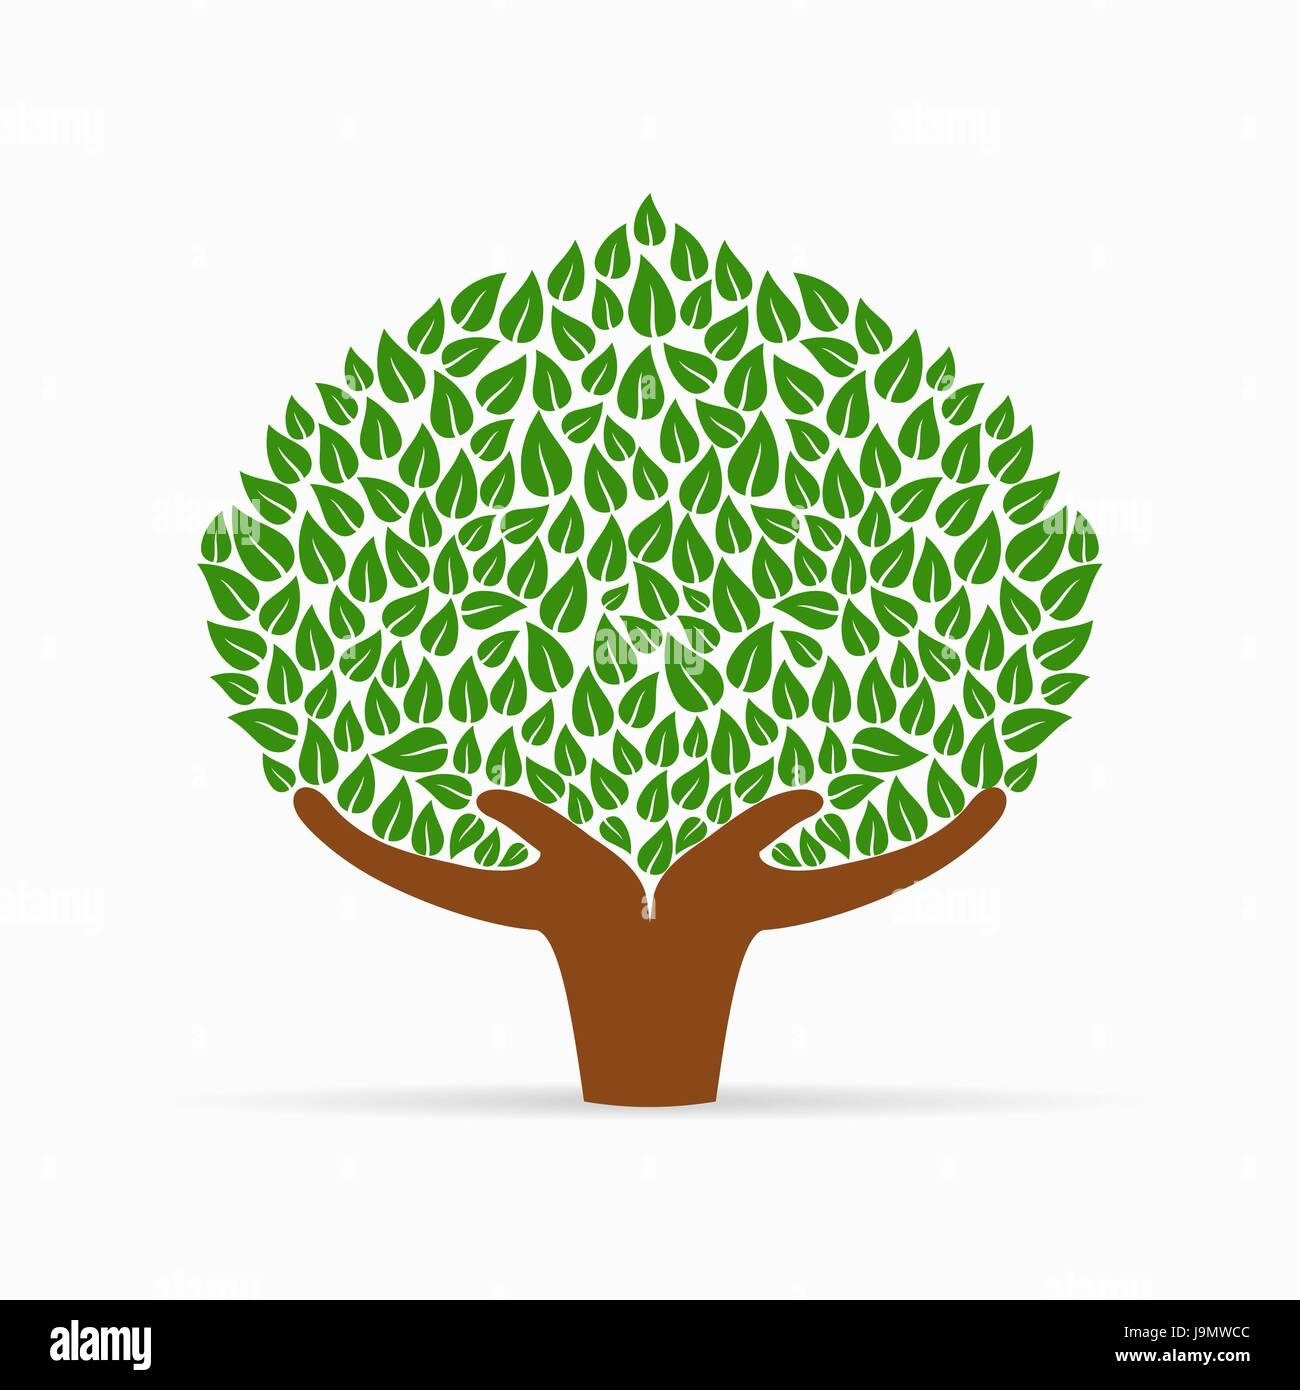 Green Tree Symbol With Human Hands Concept Illustration For Stock